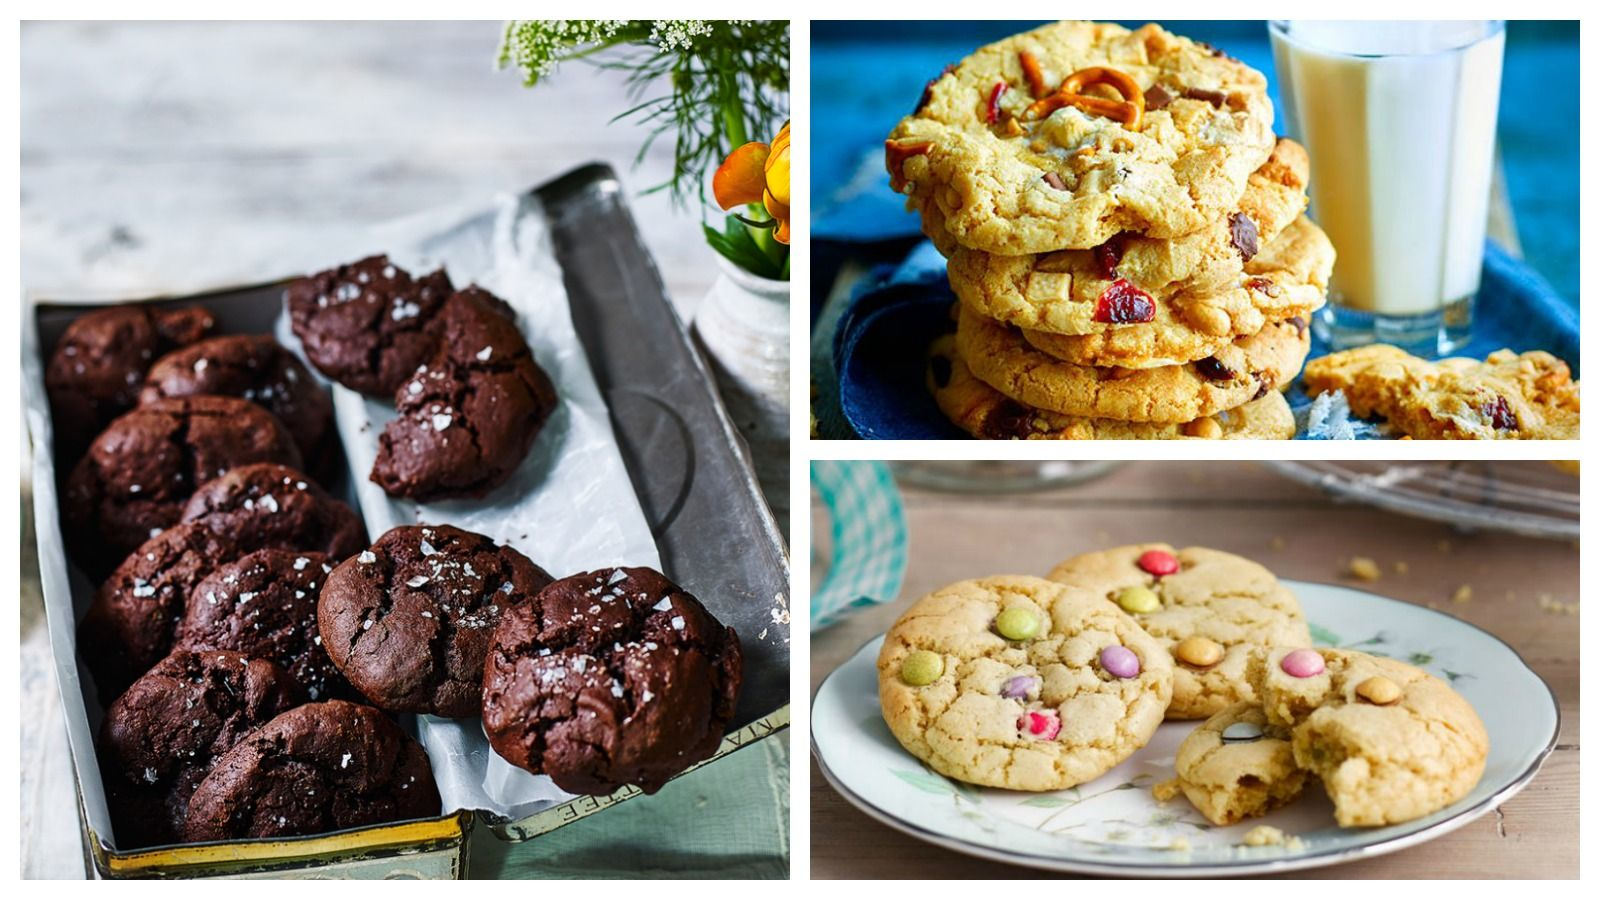 Best Biscuit And Cookie Recipes 2021